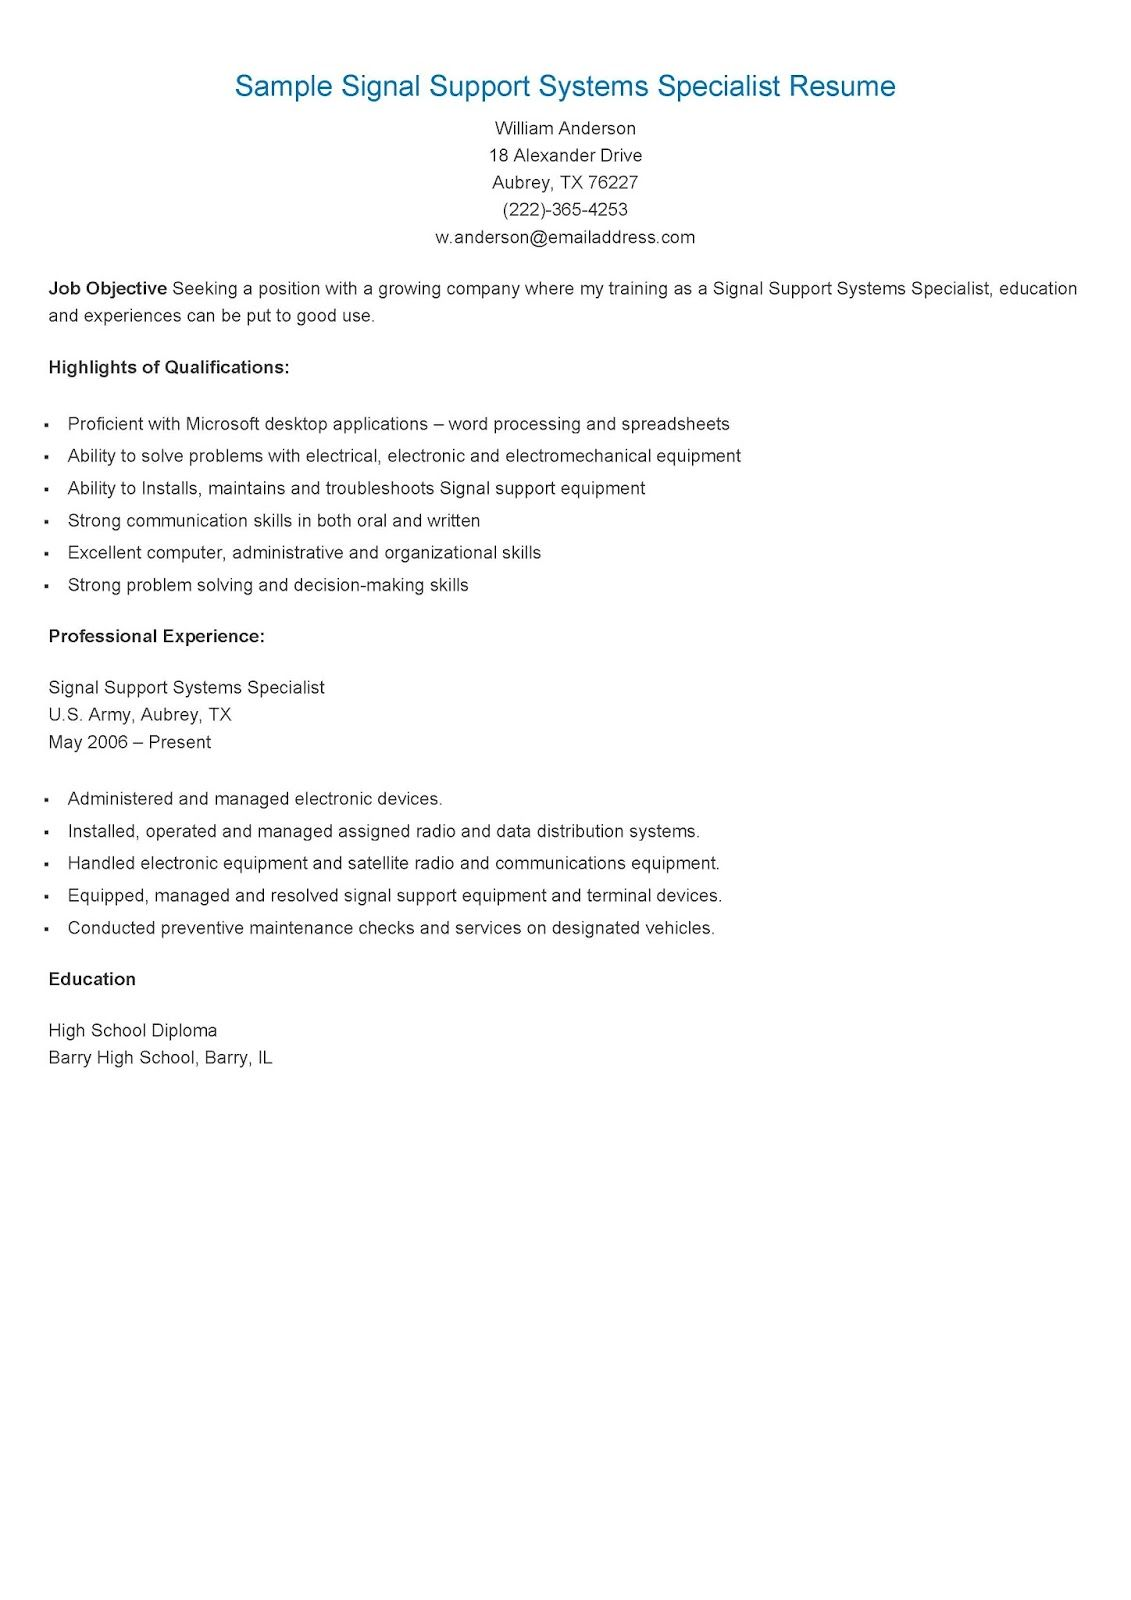 sample resume physical security specialist resume template physical security specialist resume grad information security resume templates security guard sample resume